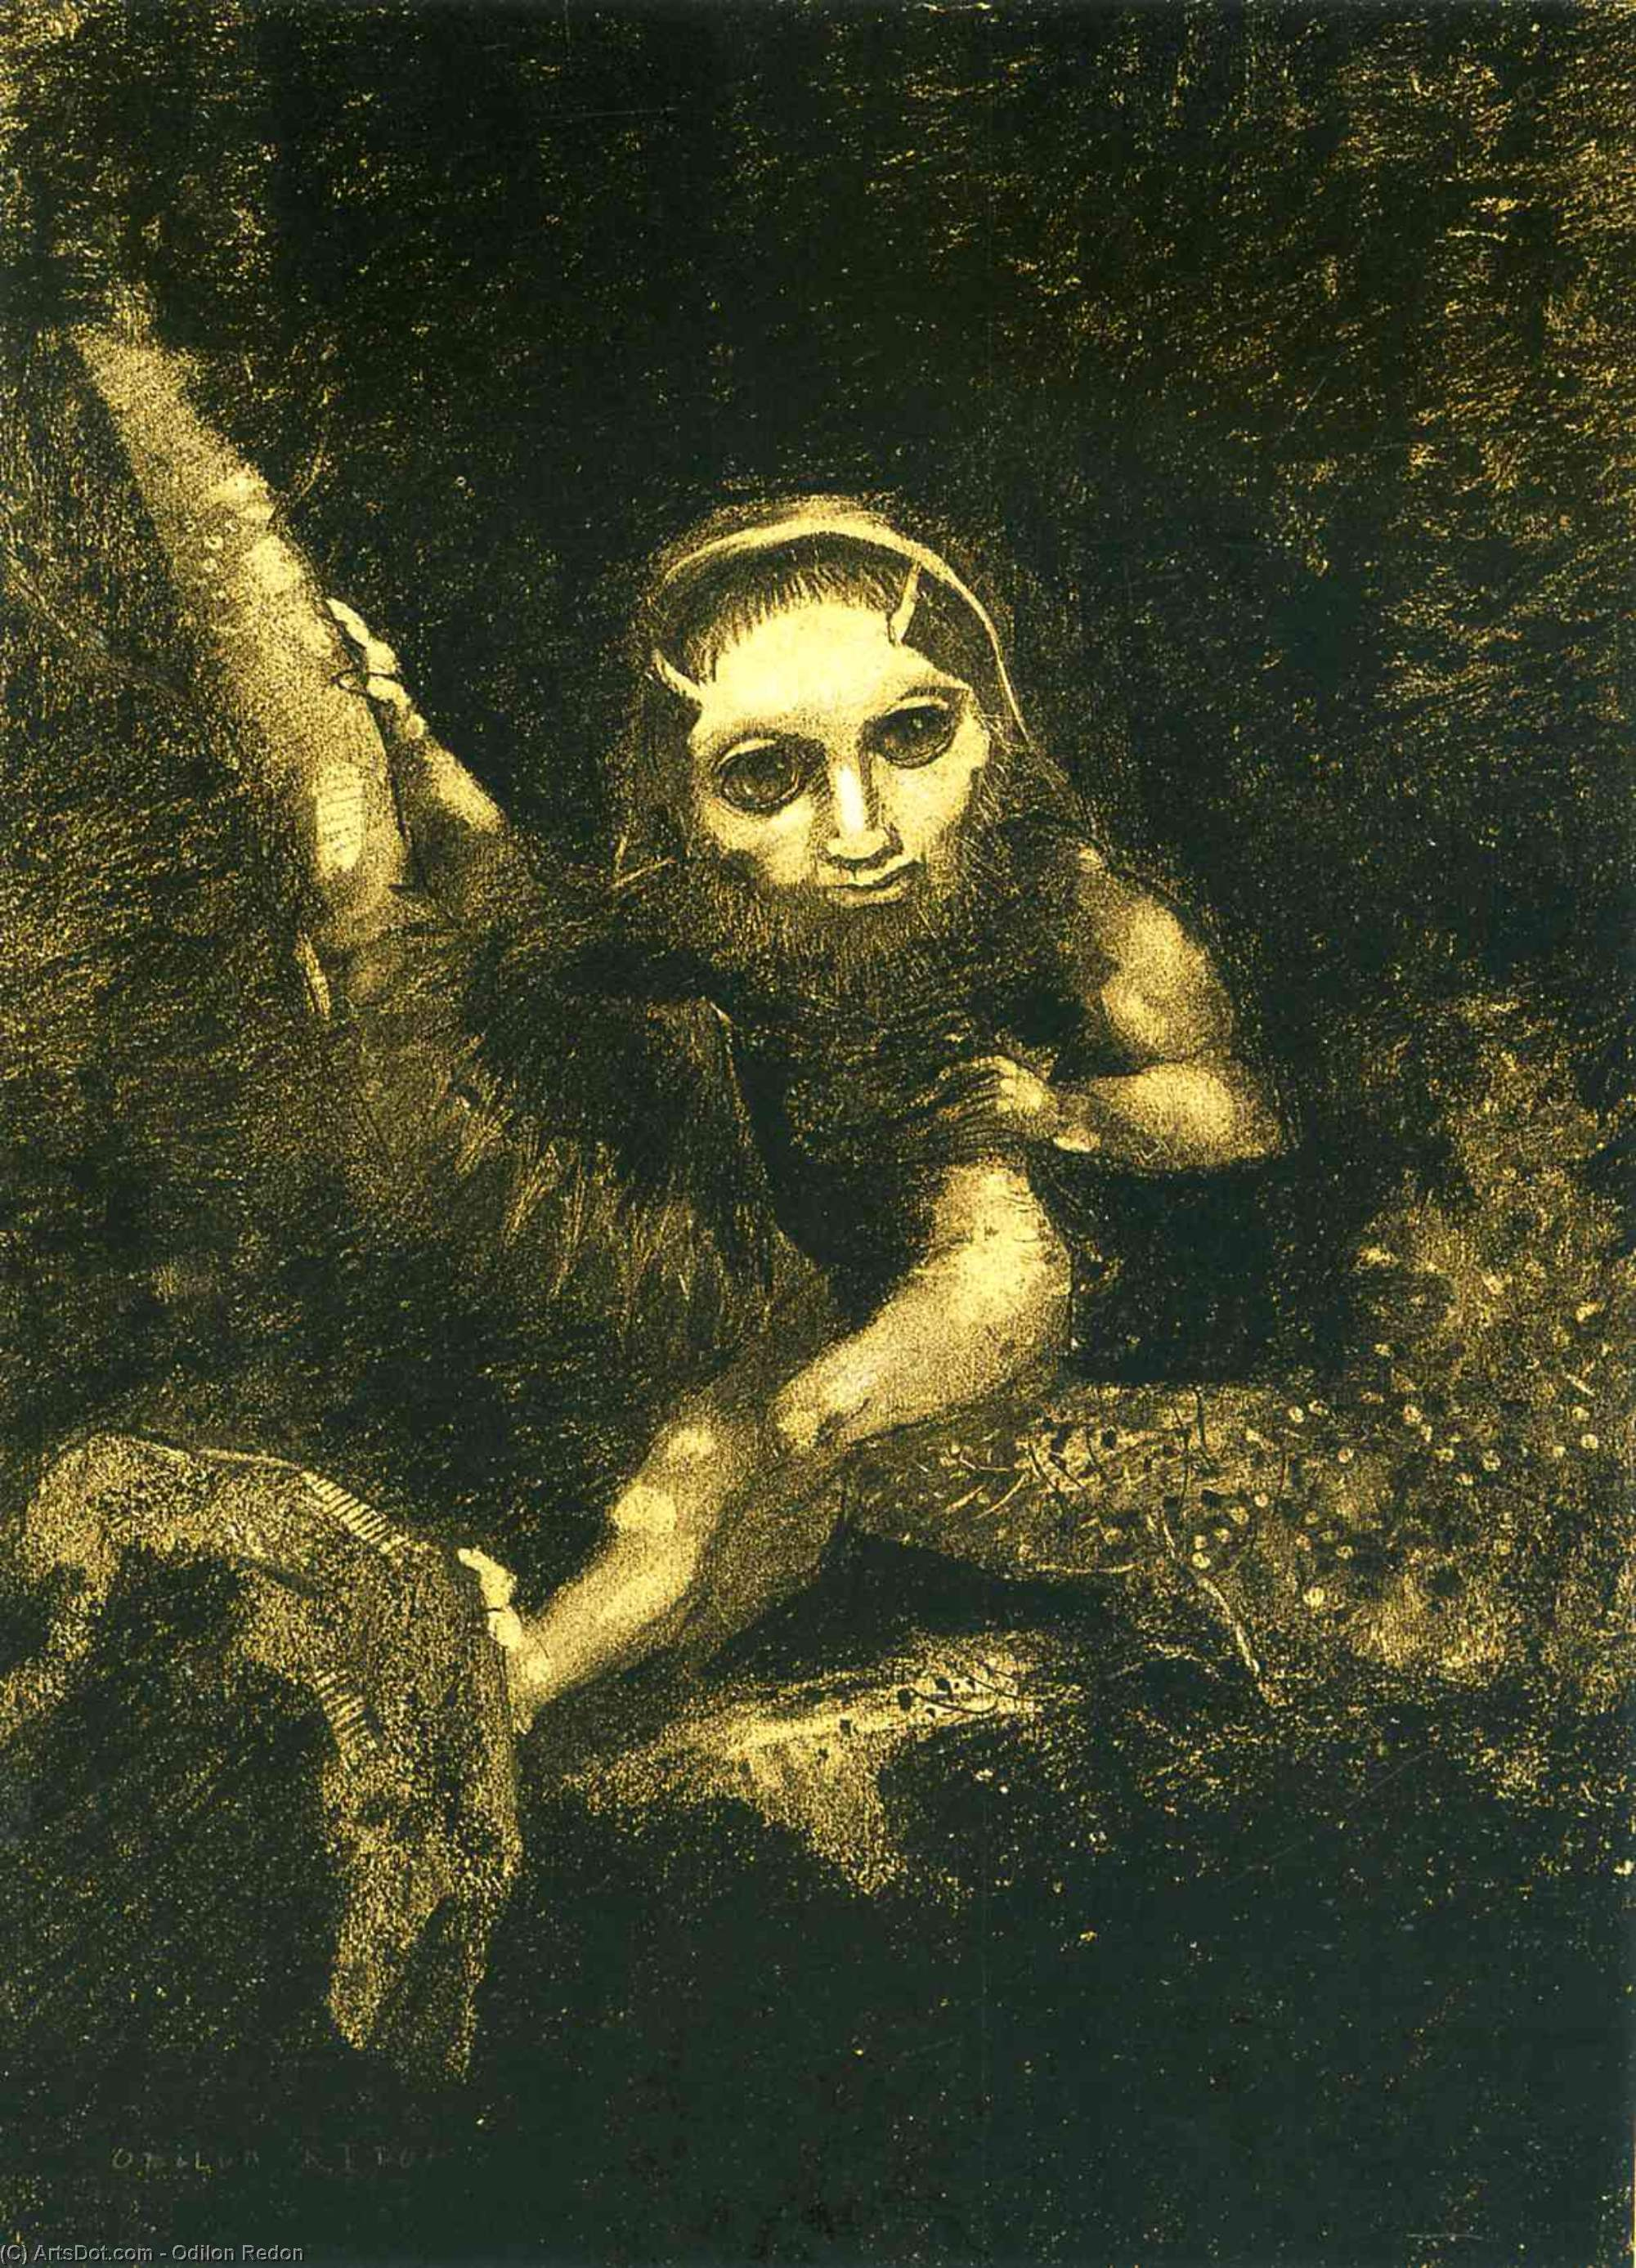 Order Paintings Reproductions | Caliban on a branch, 1881 by Odilon Redon (1840-1916, France) | ArtsDot.com